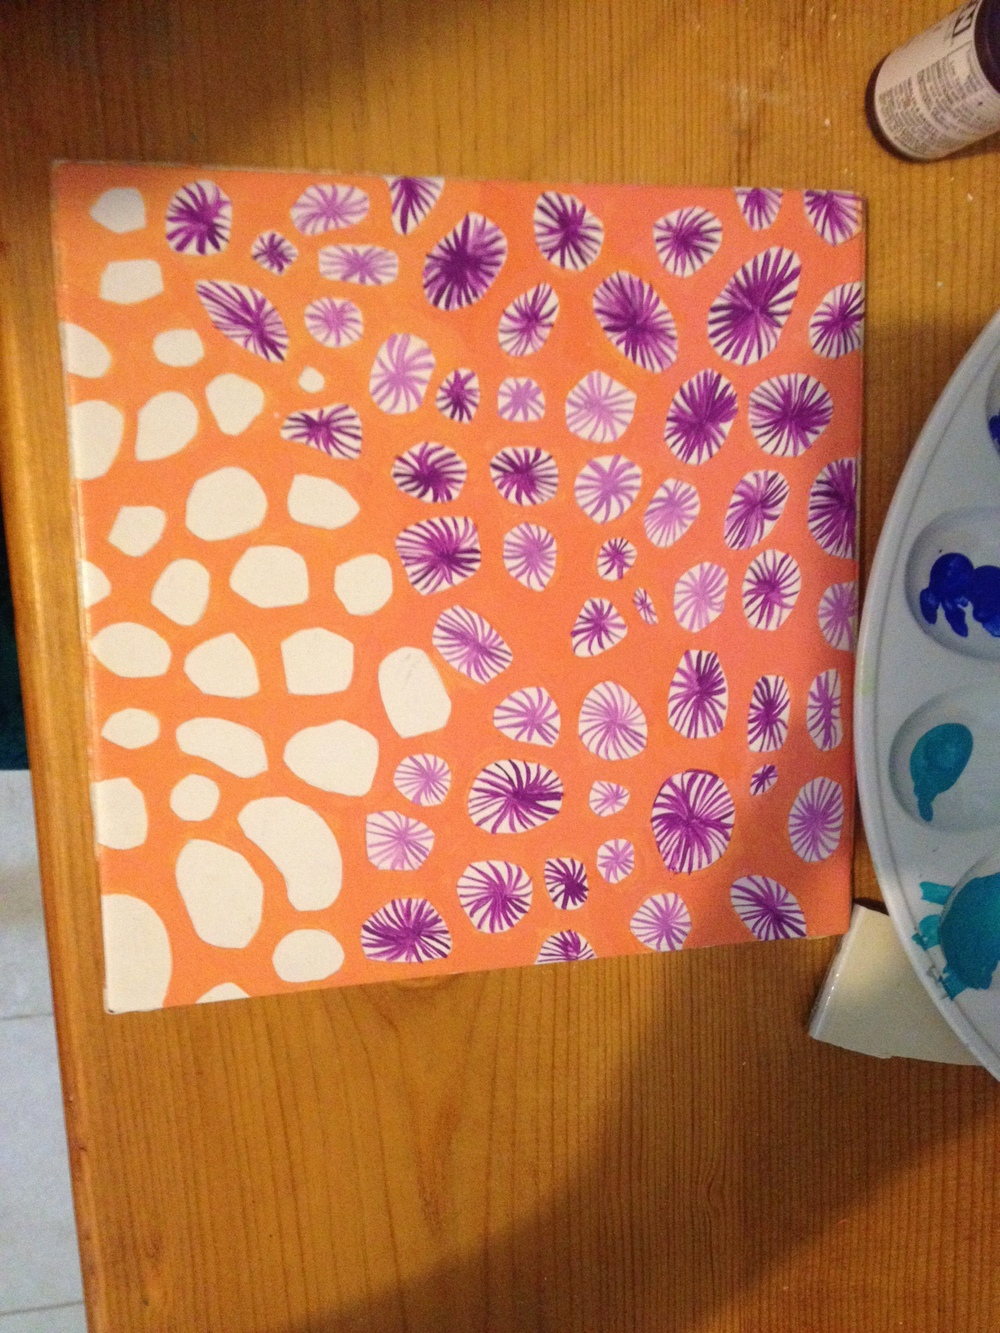 Coral tile with purple.